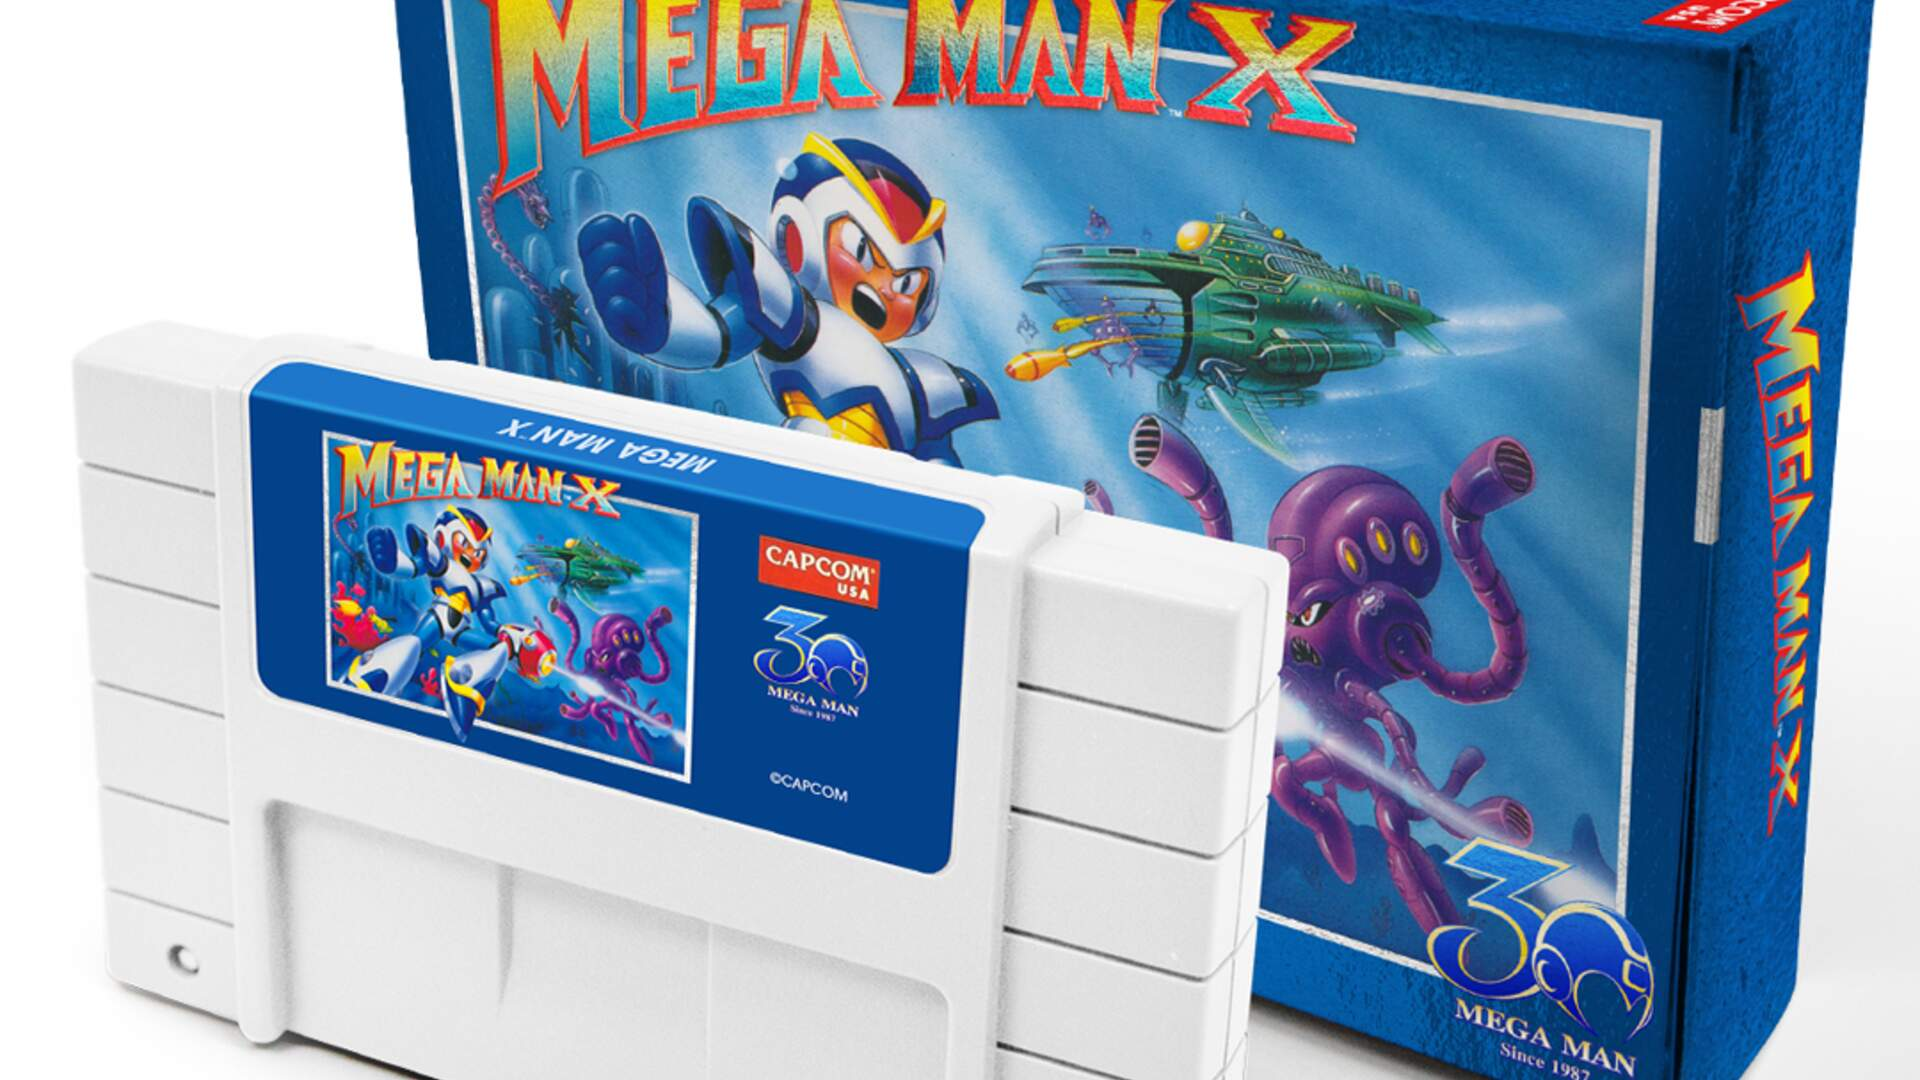 Mega Man 2 and Mega Man X are Getting Re-Released on Cartridge for Its 30th Anniversary